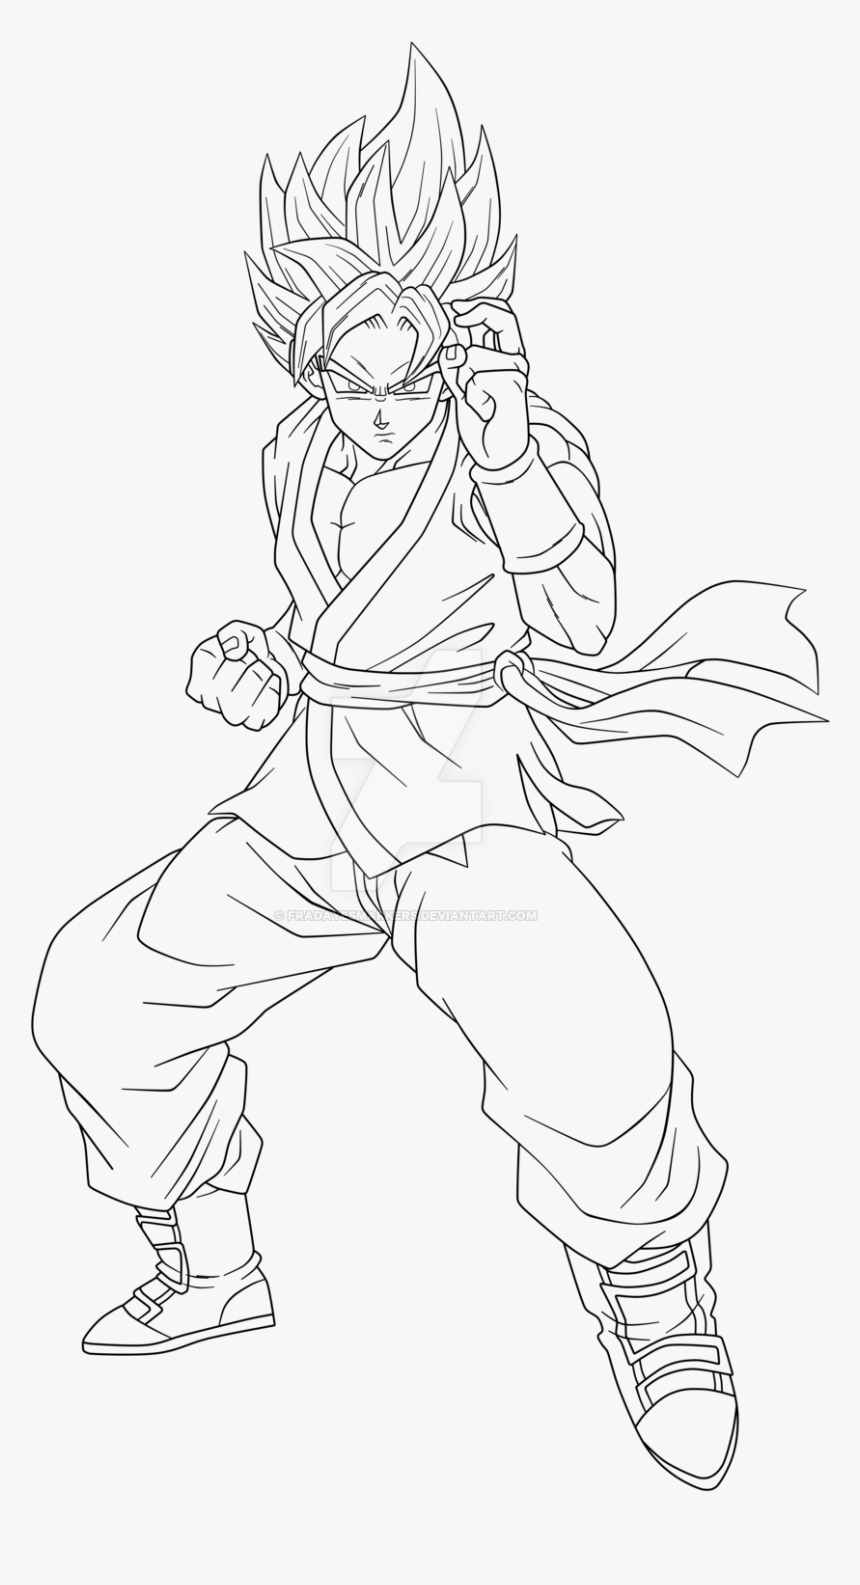 coloring pictures of goku goku coloring pages to download and print for free of coloring goku pictures